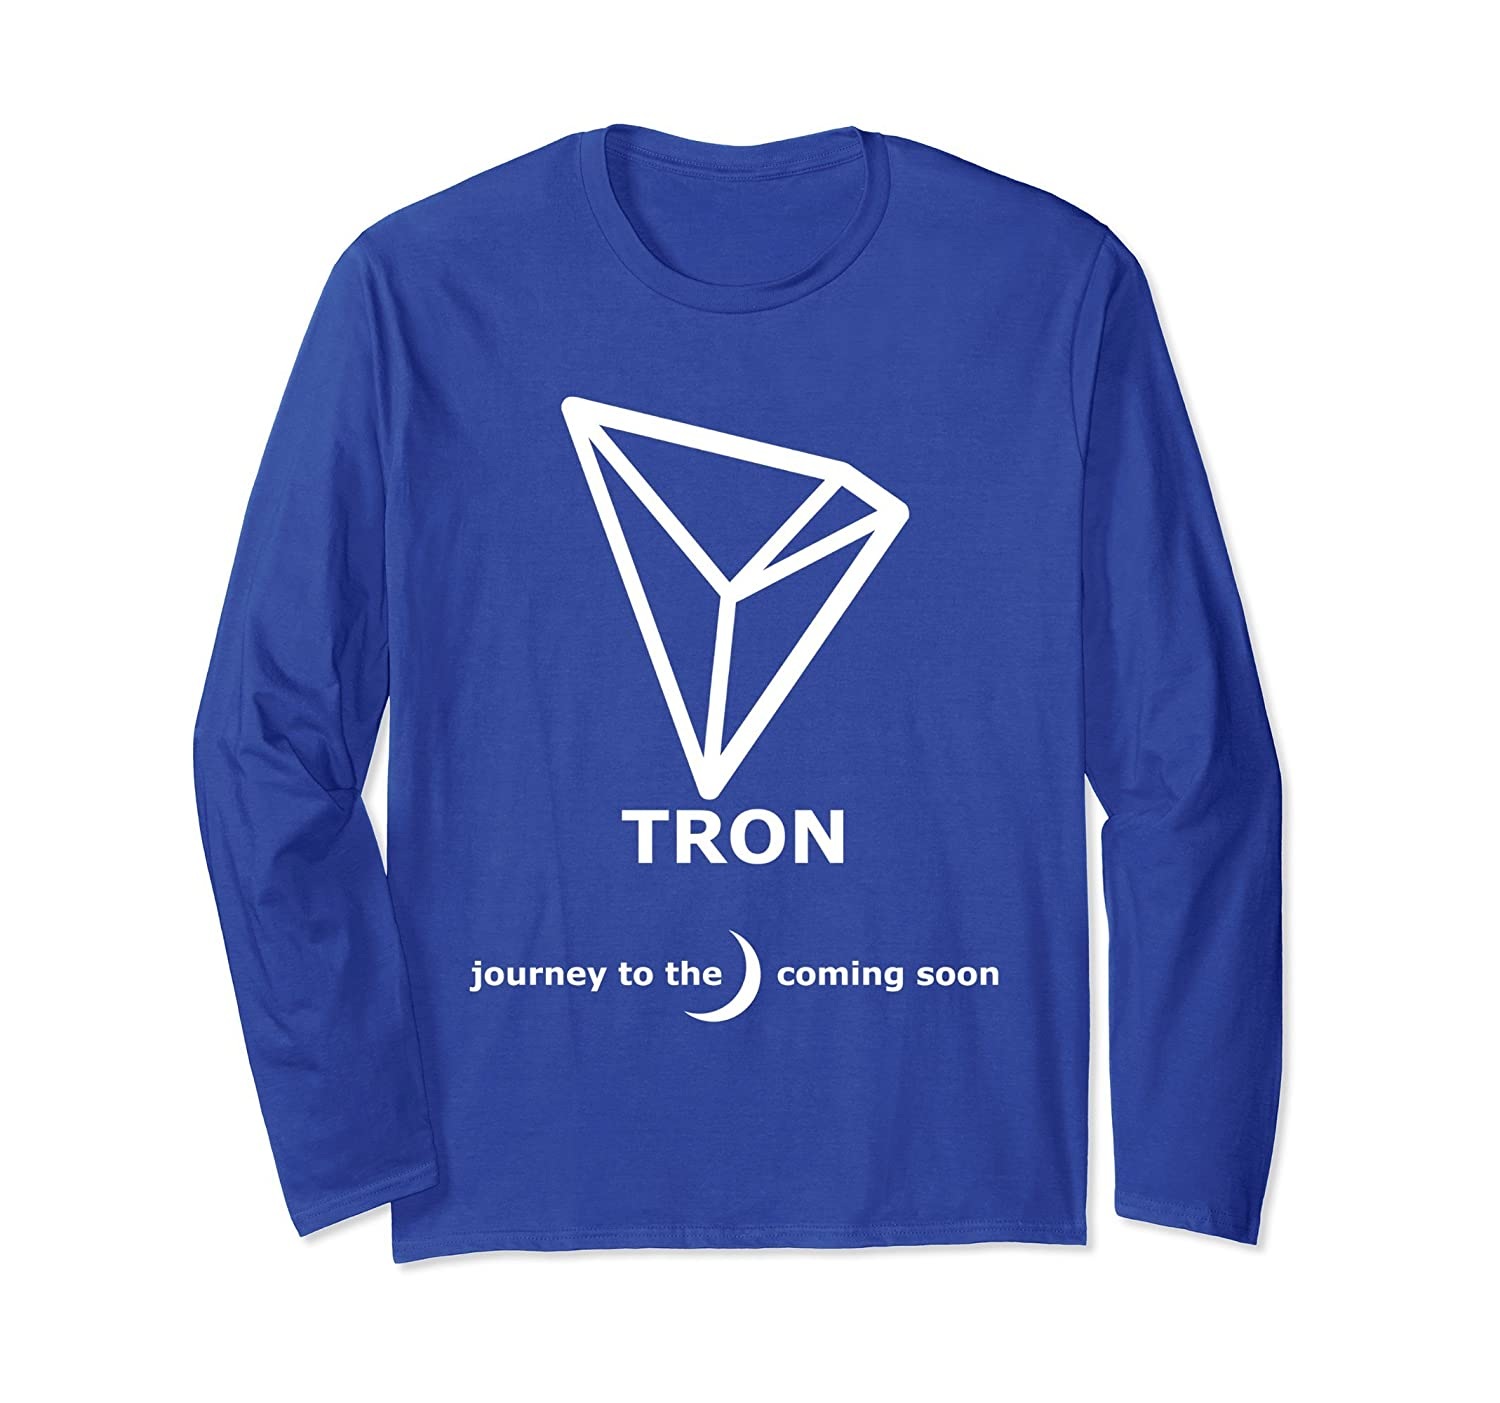 Tron Crypto T Shirt Tron To The Moon Trx Prm Paramatee